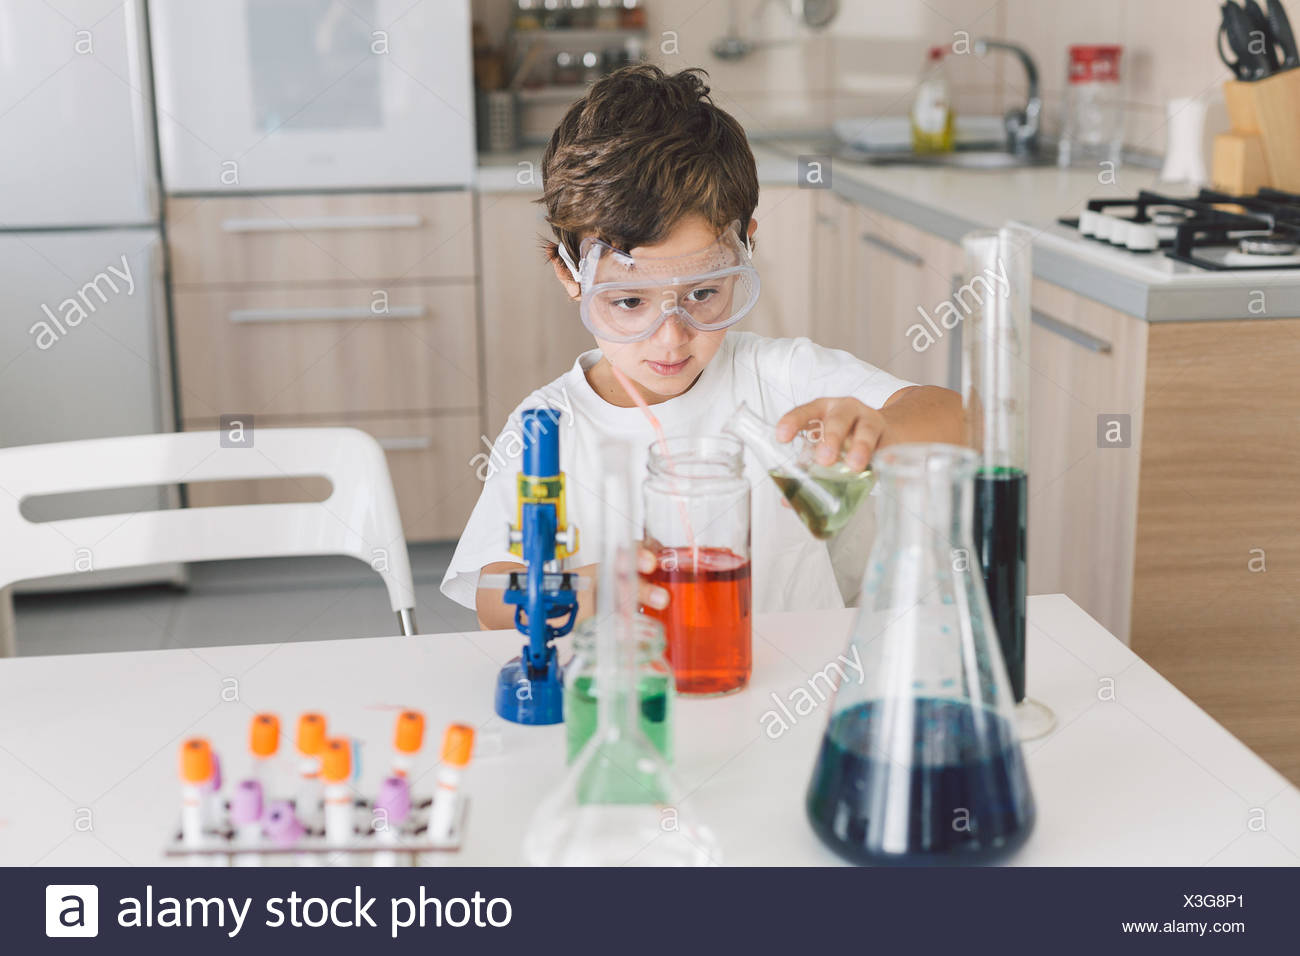 Boy playing science experiments at home Stock Photo